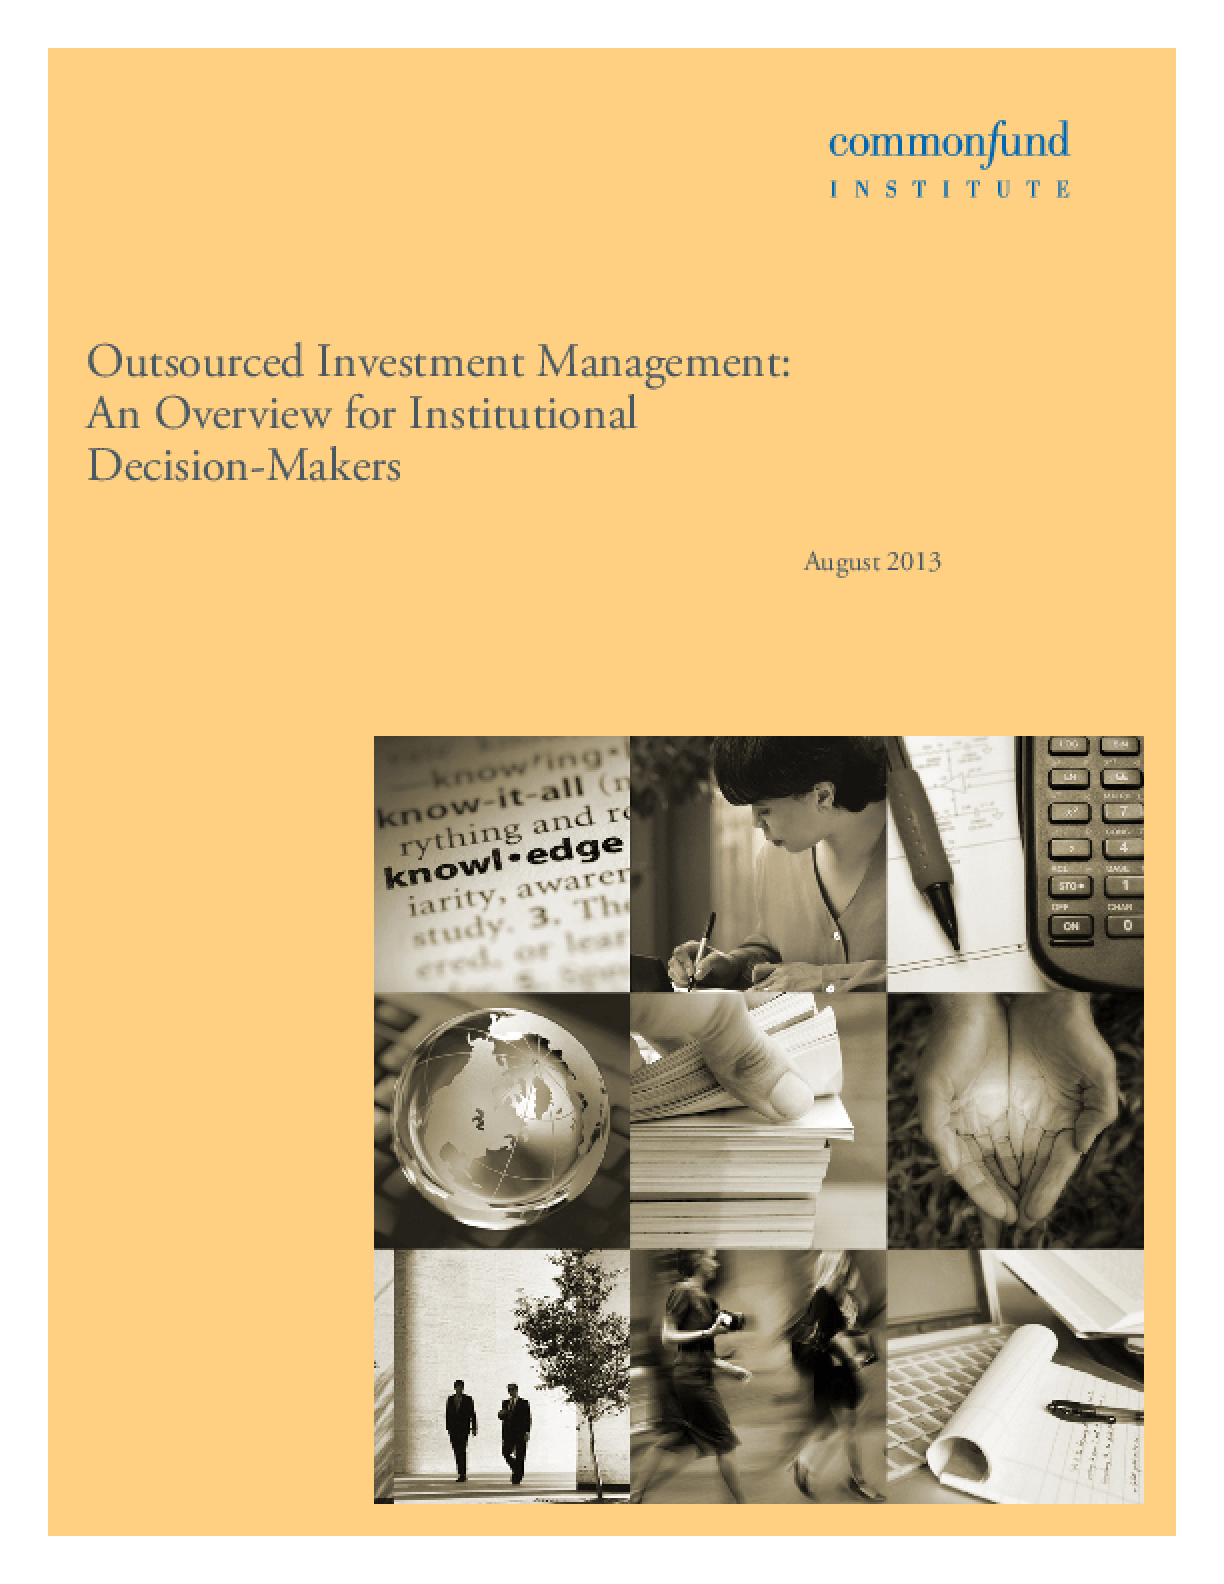 Outsourced Investment Management: An Overview for Institutional Decision-Makers